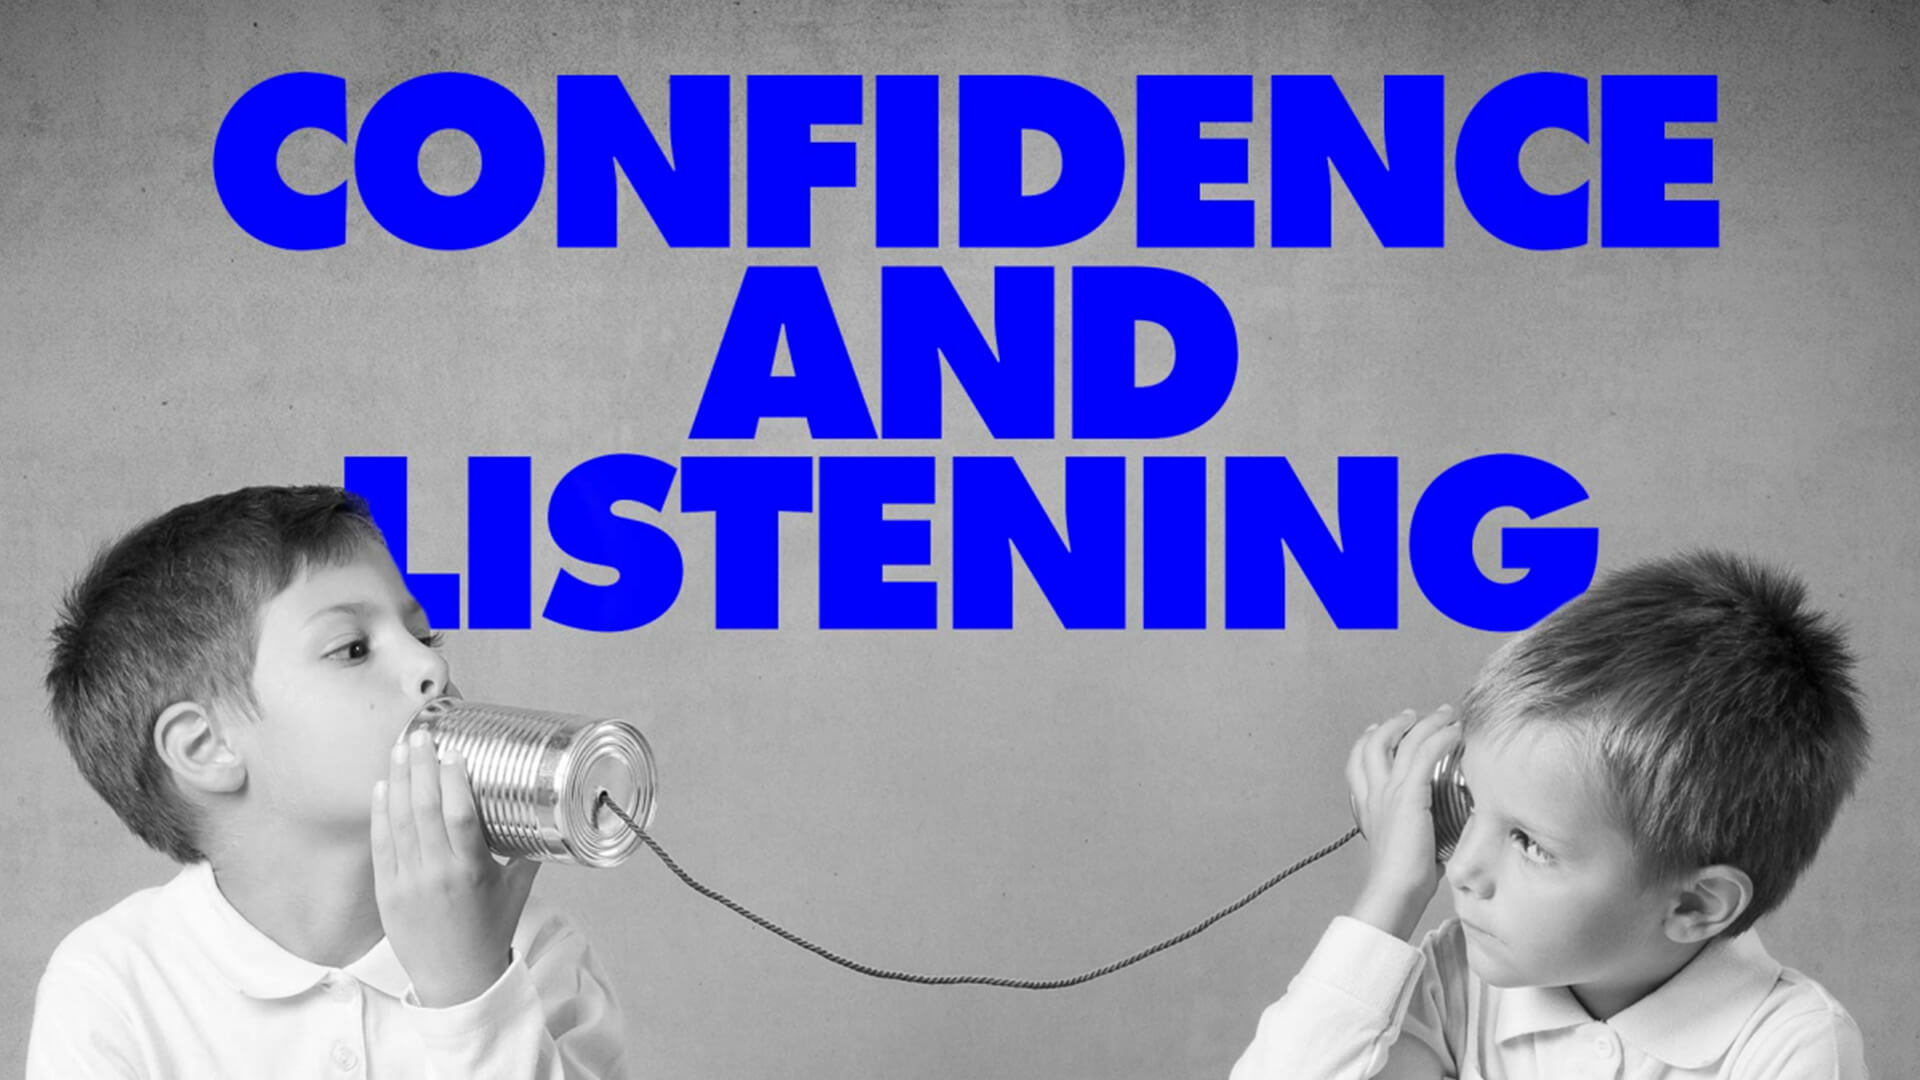 How to Show Confidence Without Knowing Everything